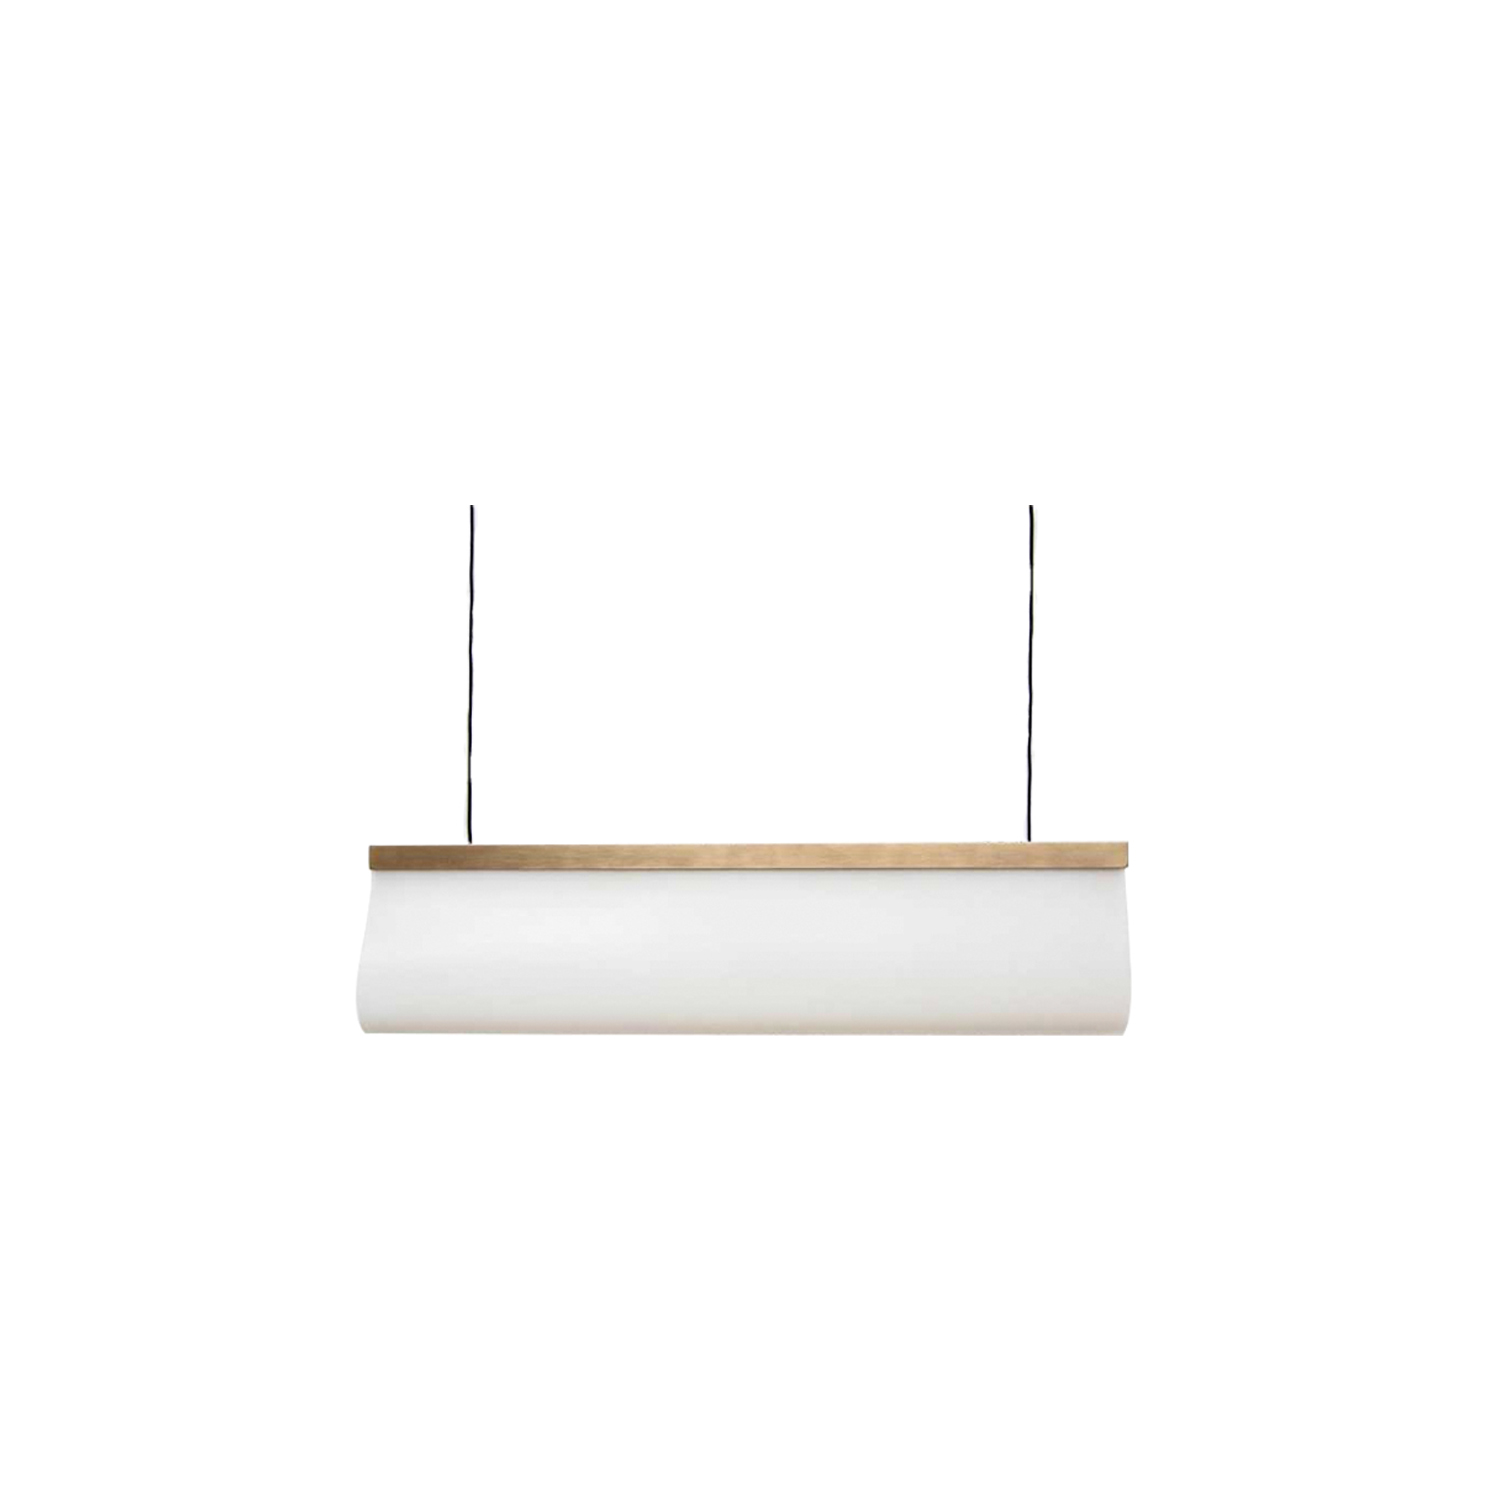 Calypso 60 Pendant - The Calypso 60 Pendant is made from silicone with a brass frame. Silicone is well known for its multiple qualities, whilst its relationship with light is still to be researched.By using a pmma profile, the hidden led light is focused and directed towards the silicone diffuser, which in return lights up with soft shades of warm light.The result is a unique entity that glows gently, apparently generating light itself. This piece is hand made and is therefore unique.   | Matter of Stuff